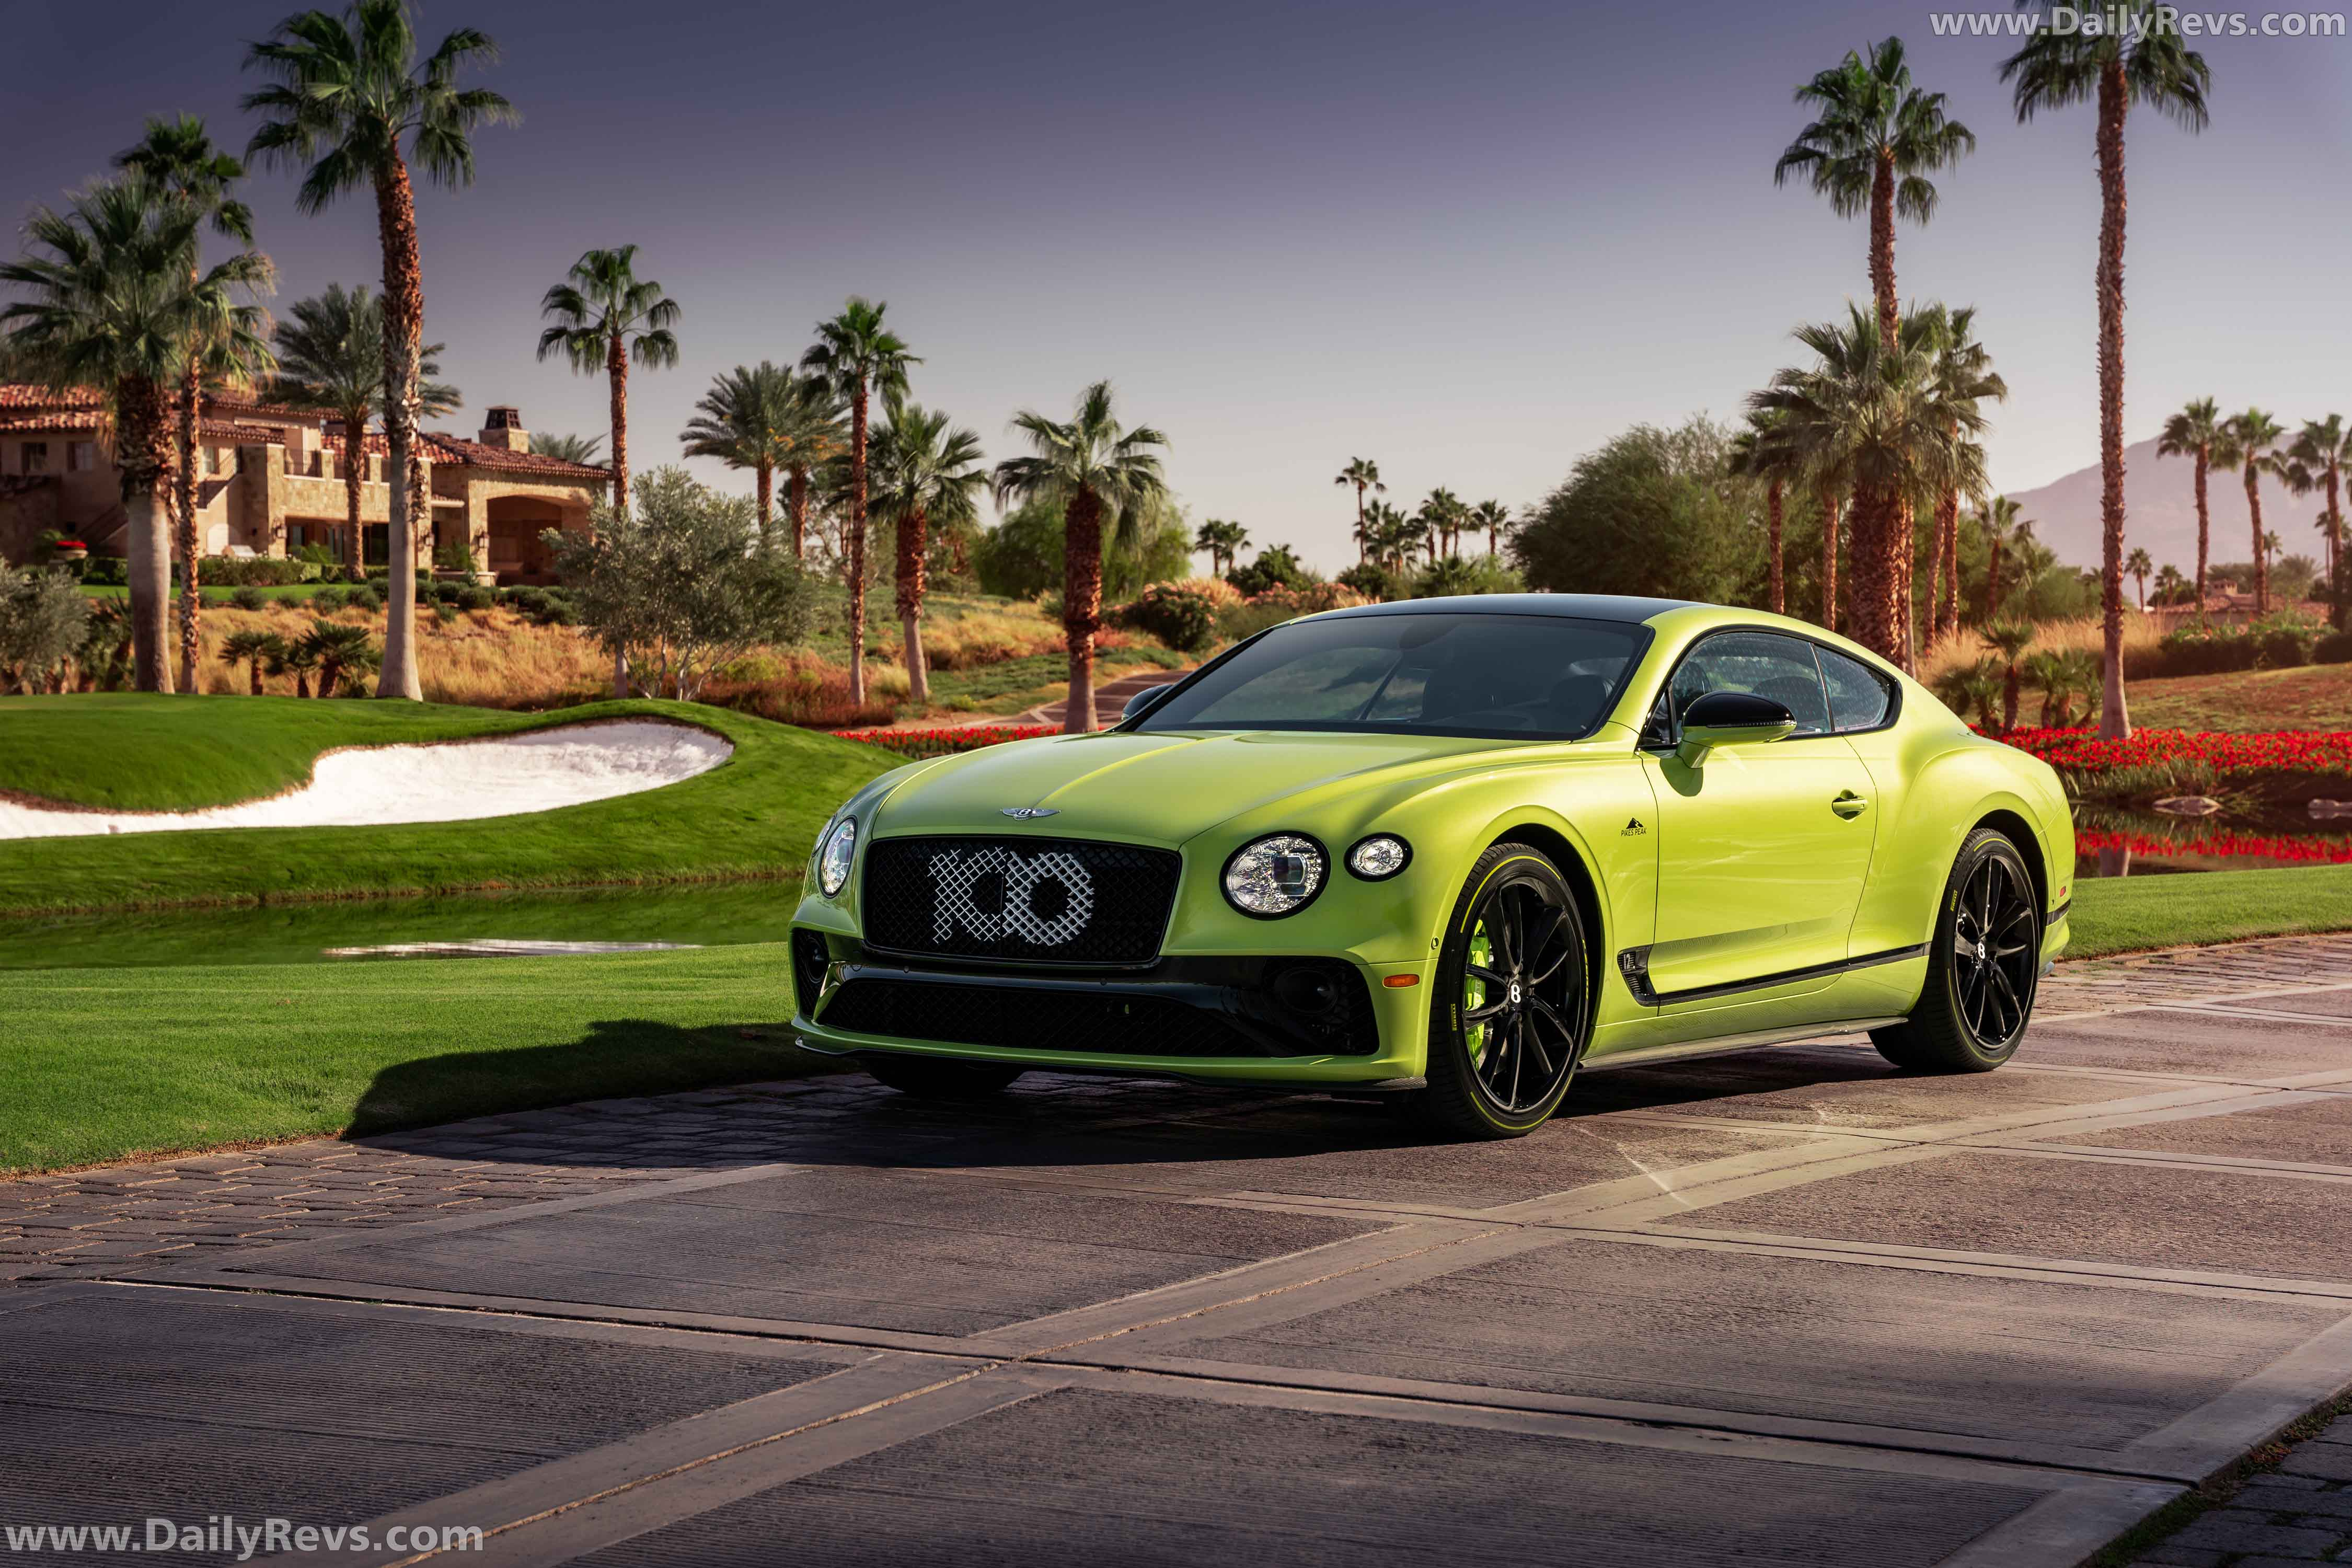 2021 Bentley Continental GT Pikes Peak Limited Edition full